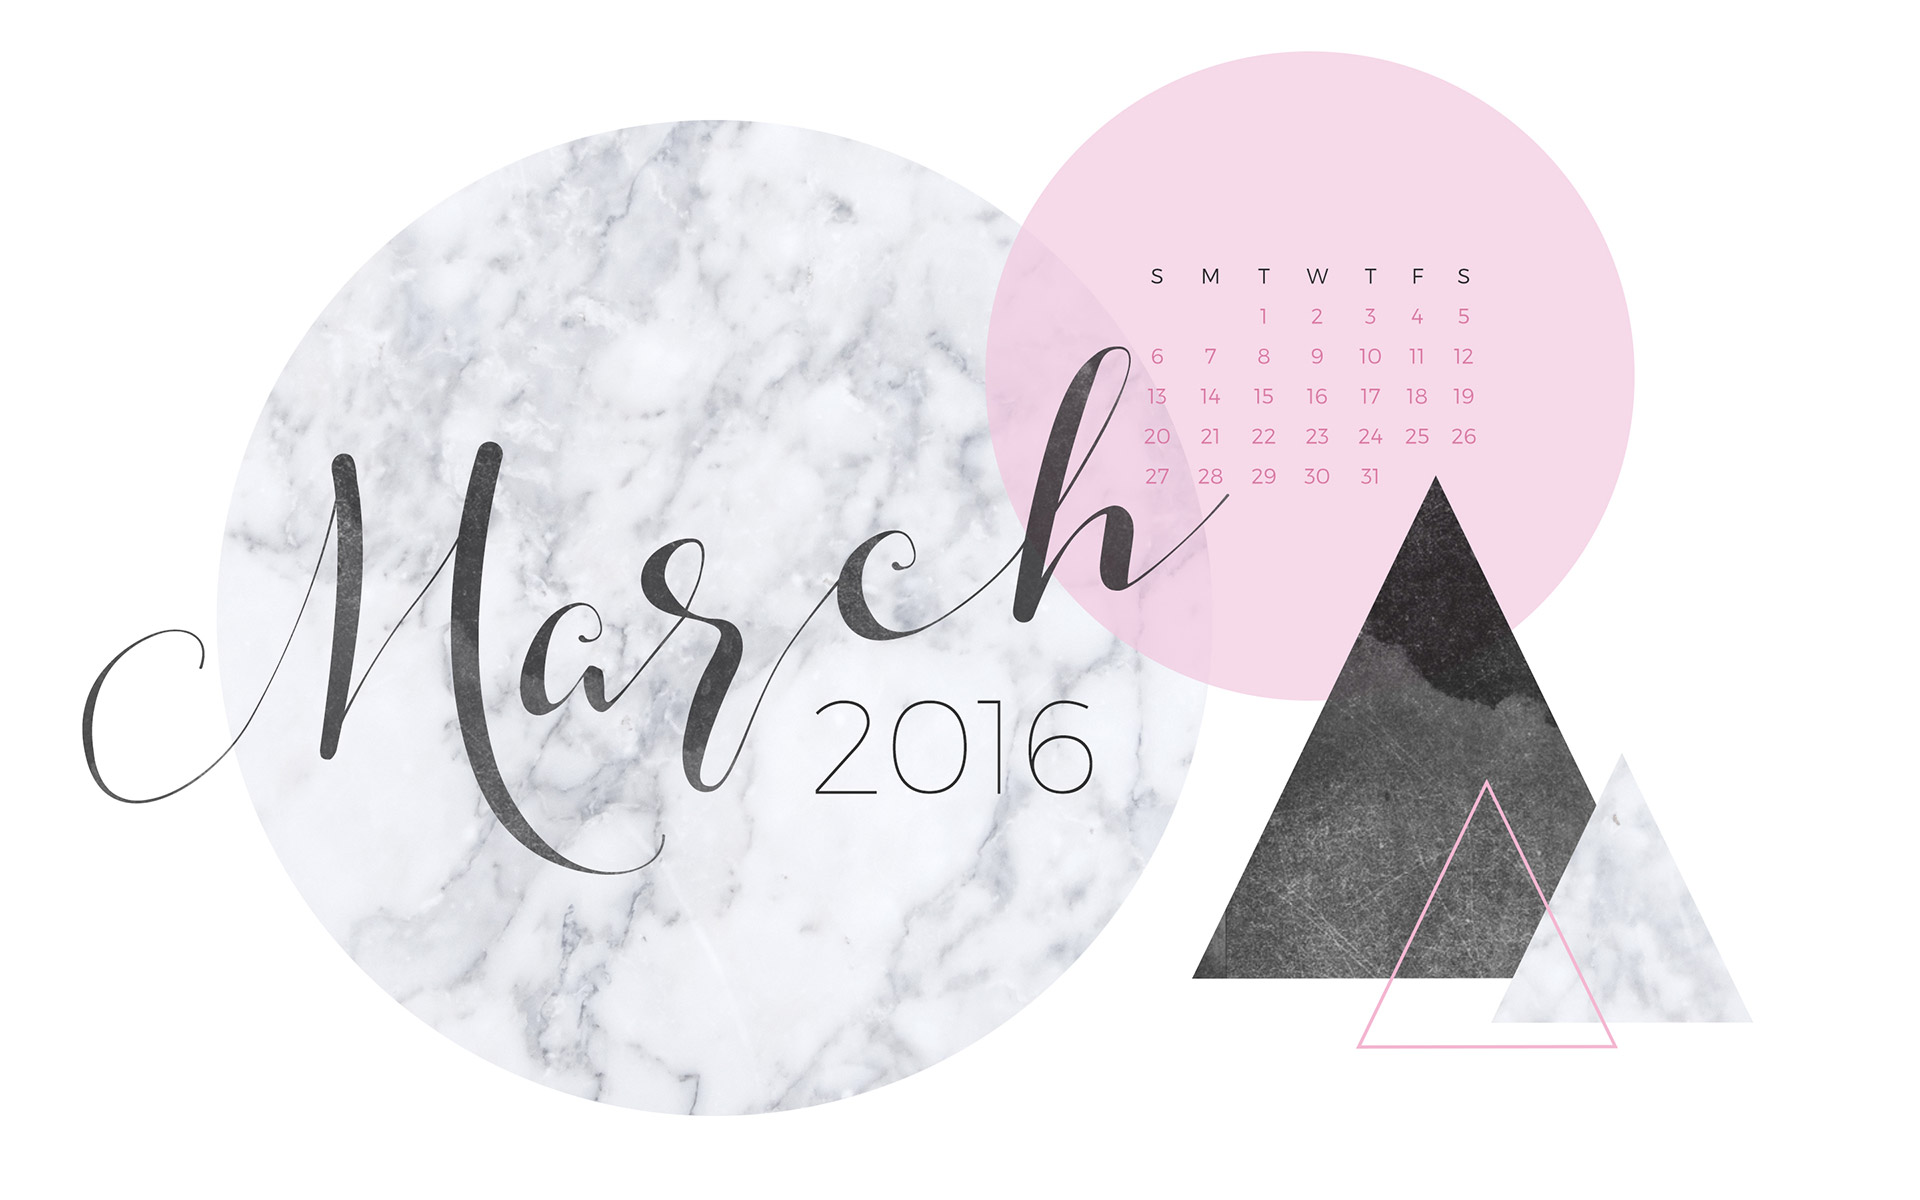 March 2016 Desktop Calendar Wallpaper Paper Leaf 1920x1200